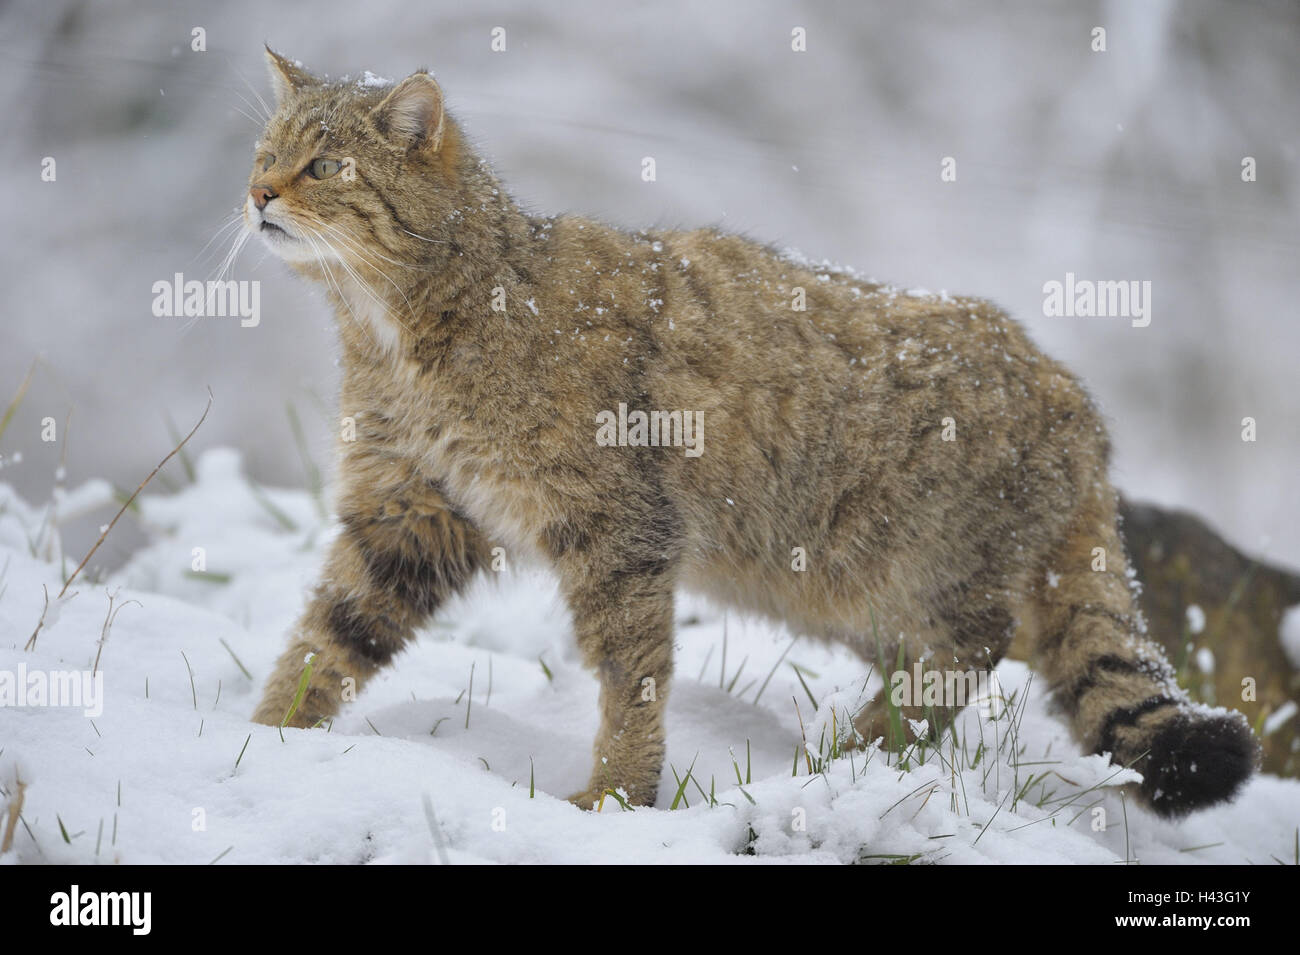 Central European wildcat, Felis silvestris, silvestris, winter, zoo, game park, animals, wild animals, mammals, - Stock Image